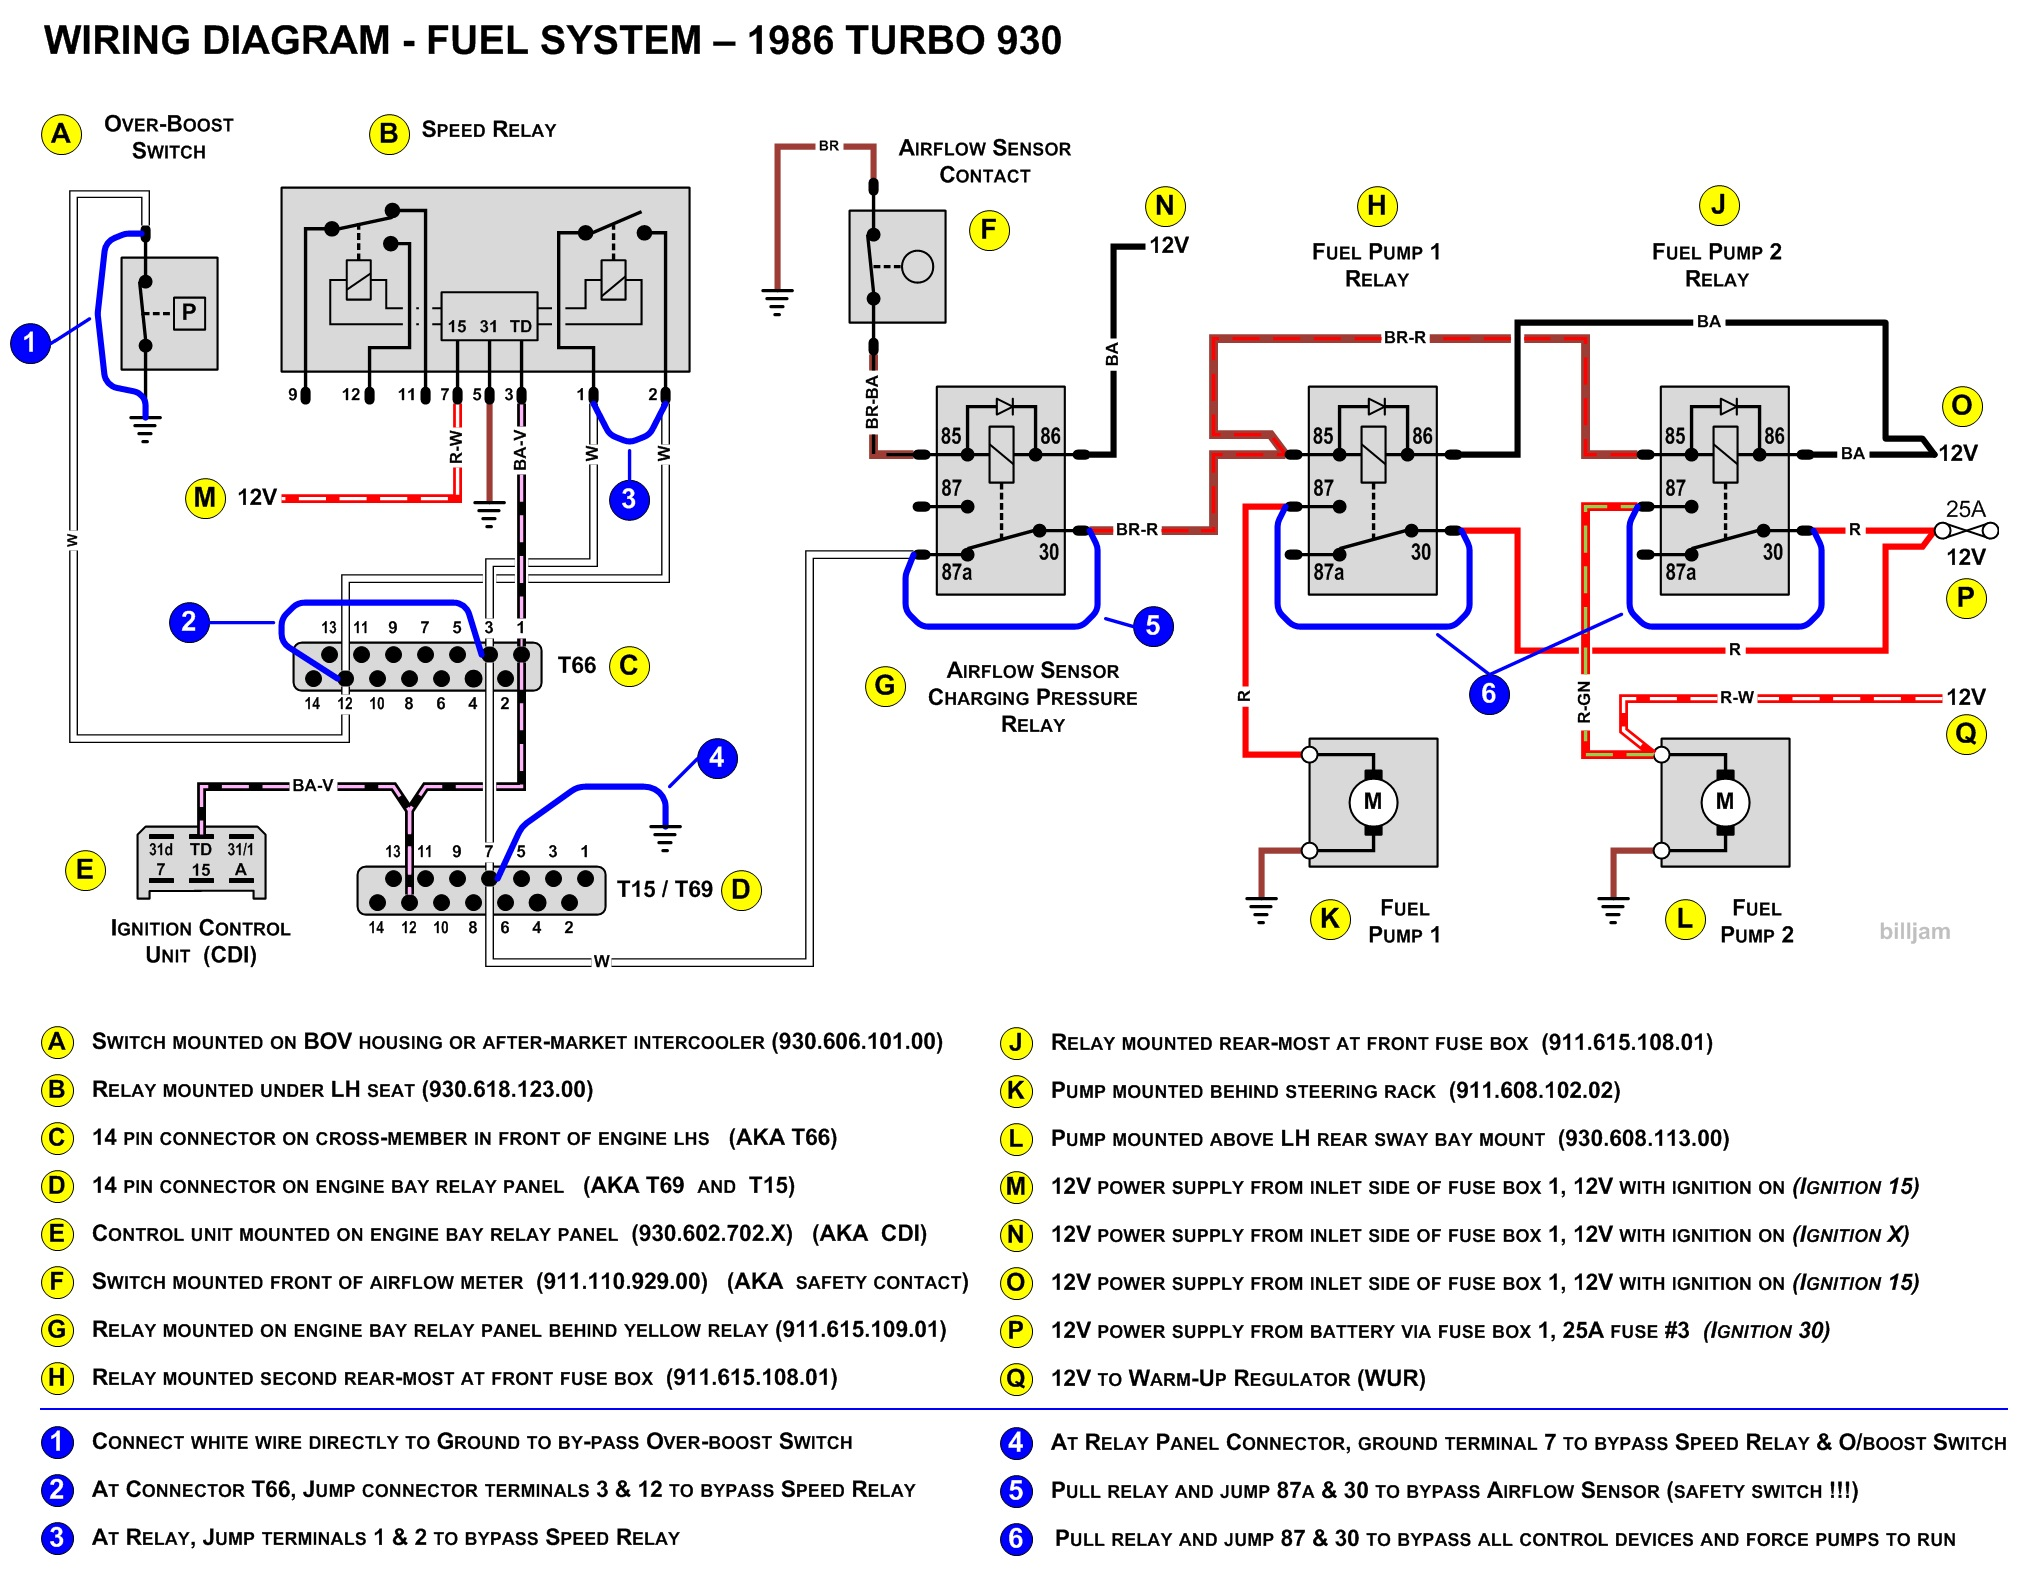 86 porsche 930 fuel system wiring diagram jumpers made a fuse box label for my 88 page 3 pelican parts technical bbs 2010 Carrera at bakdesigns.co